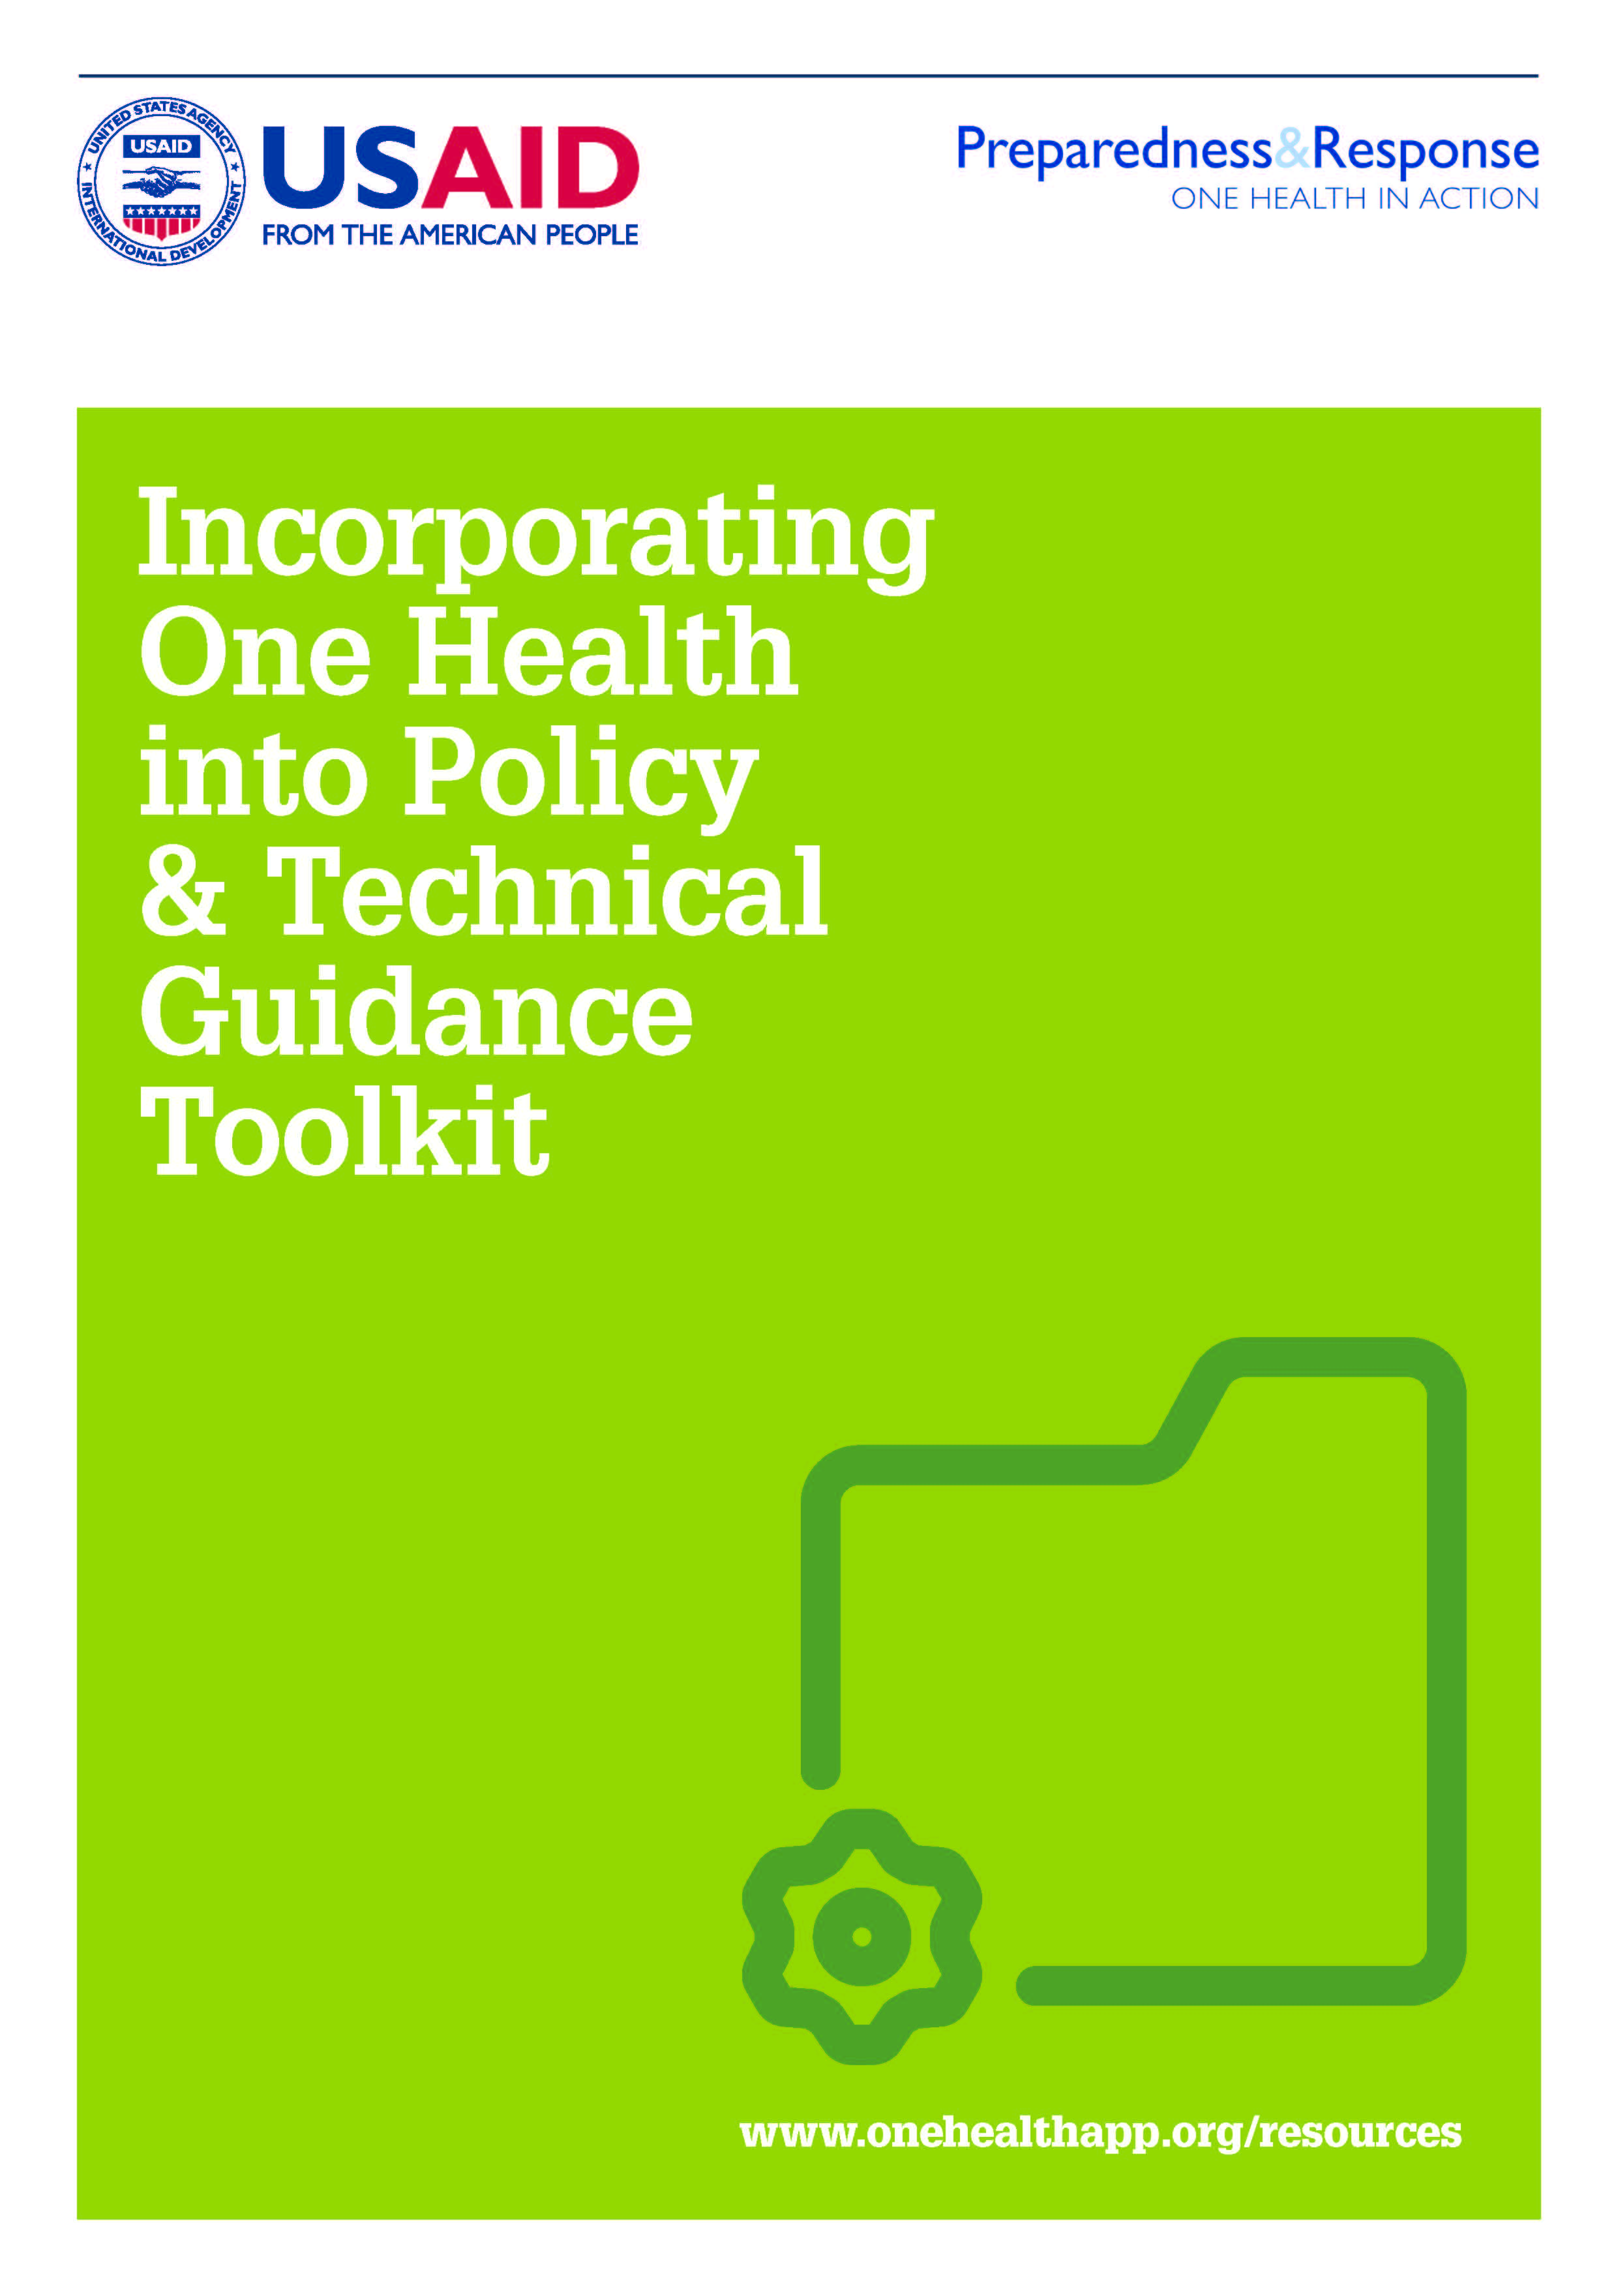 Incorporating One Health into Policy and Technical Guidance Toolkit